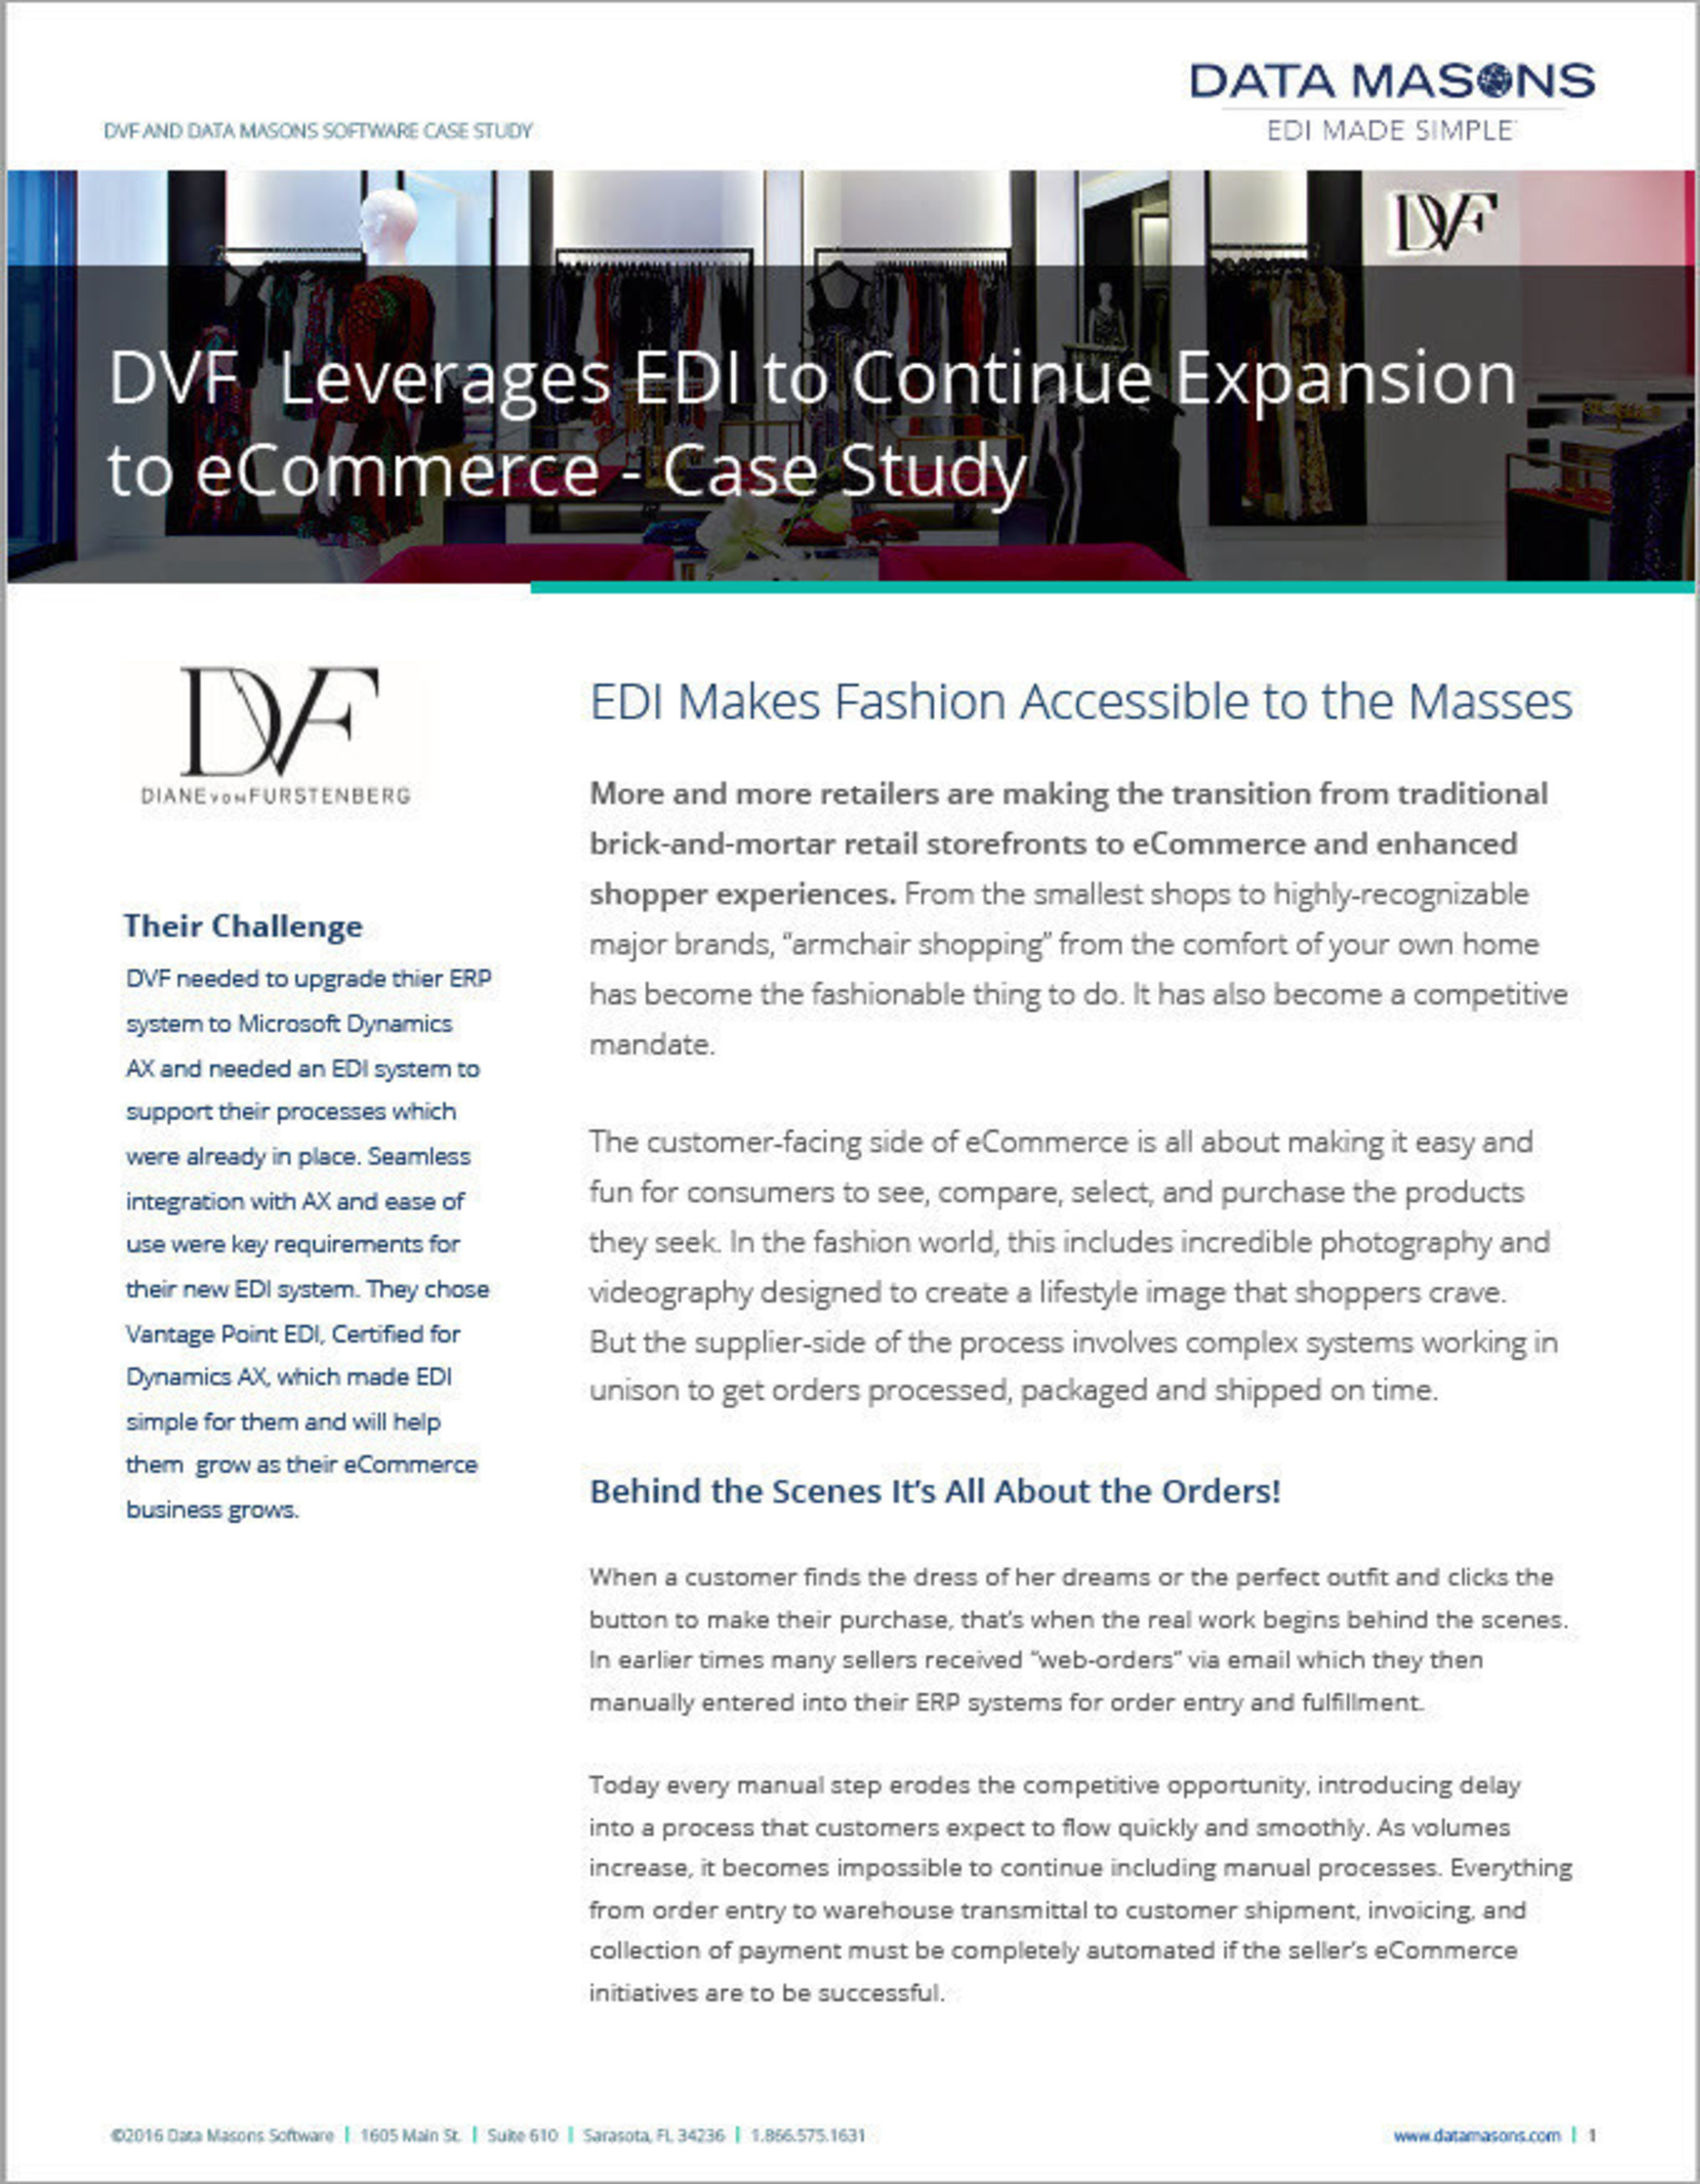 Diane von Furstenberg Selects Data Masons' EDI Made Simple' Solution for Microsoft Dynamics AX to Streamline Order Processing